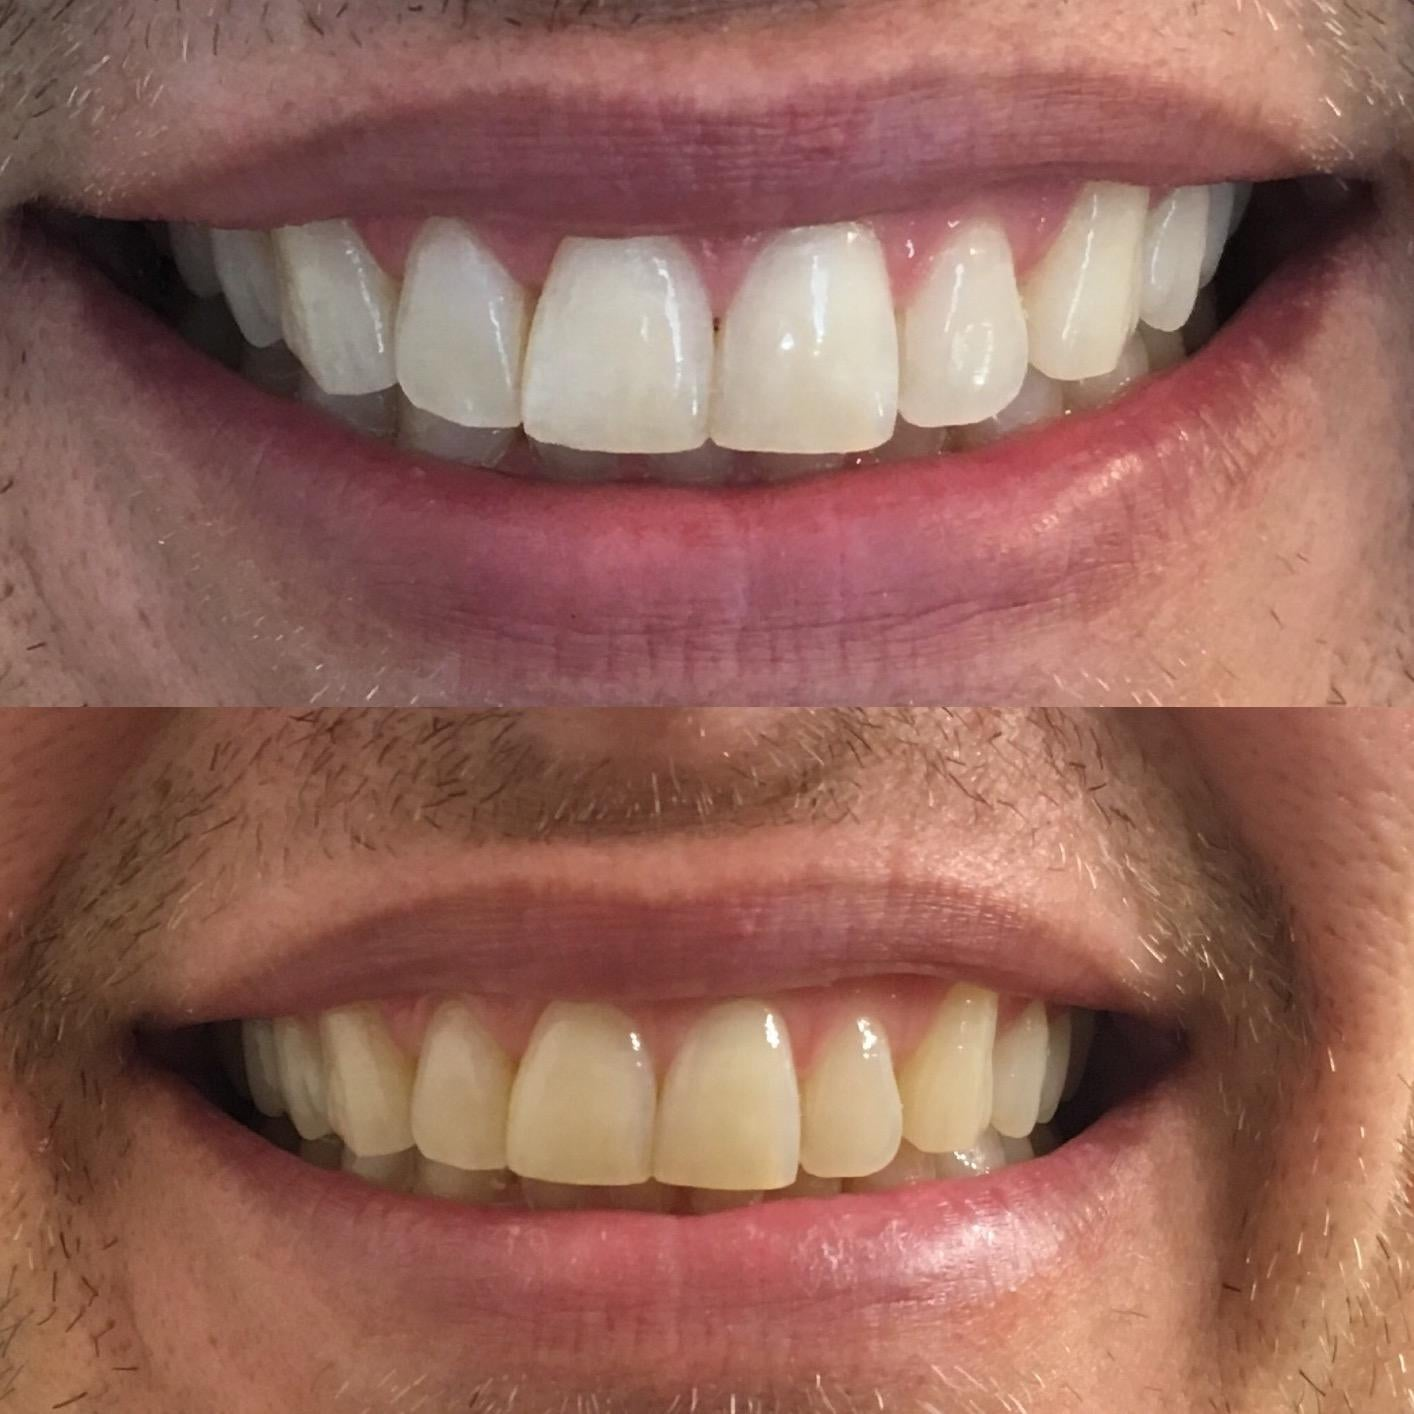 a reviewer's teeth looking pale yellow then much whiter